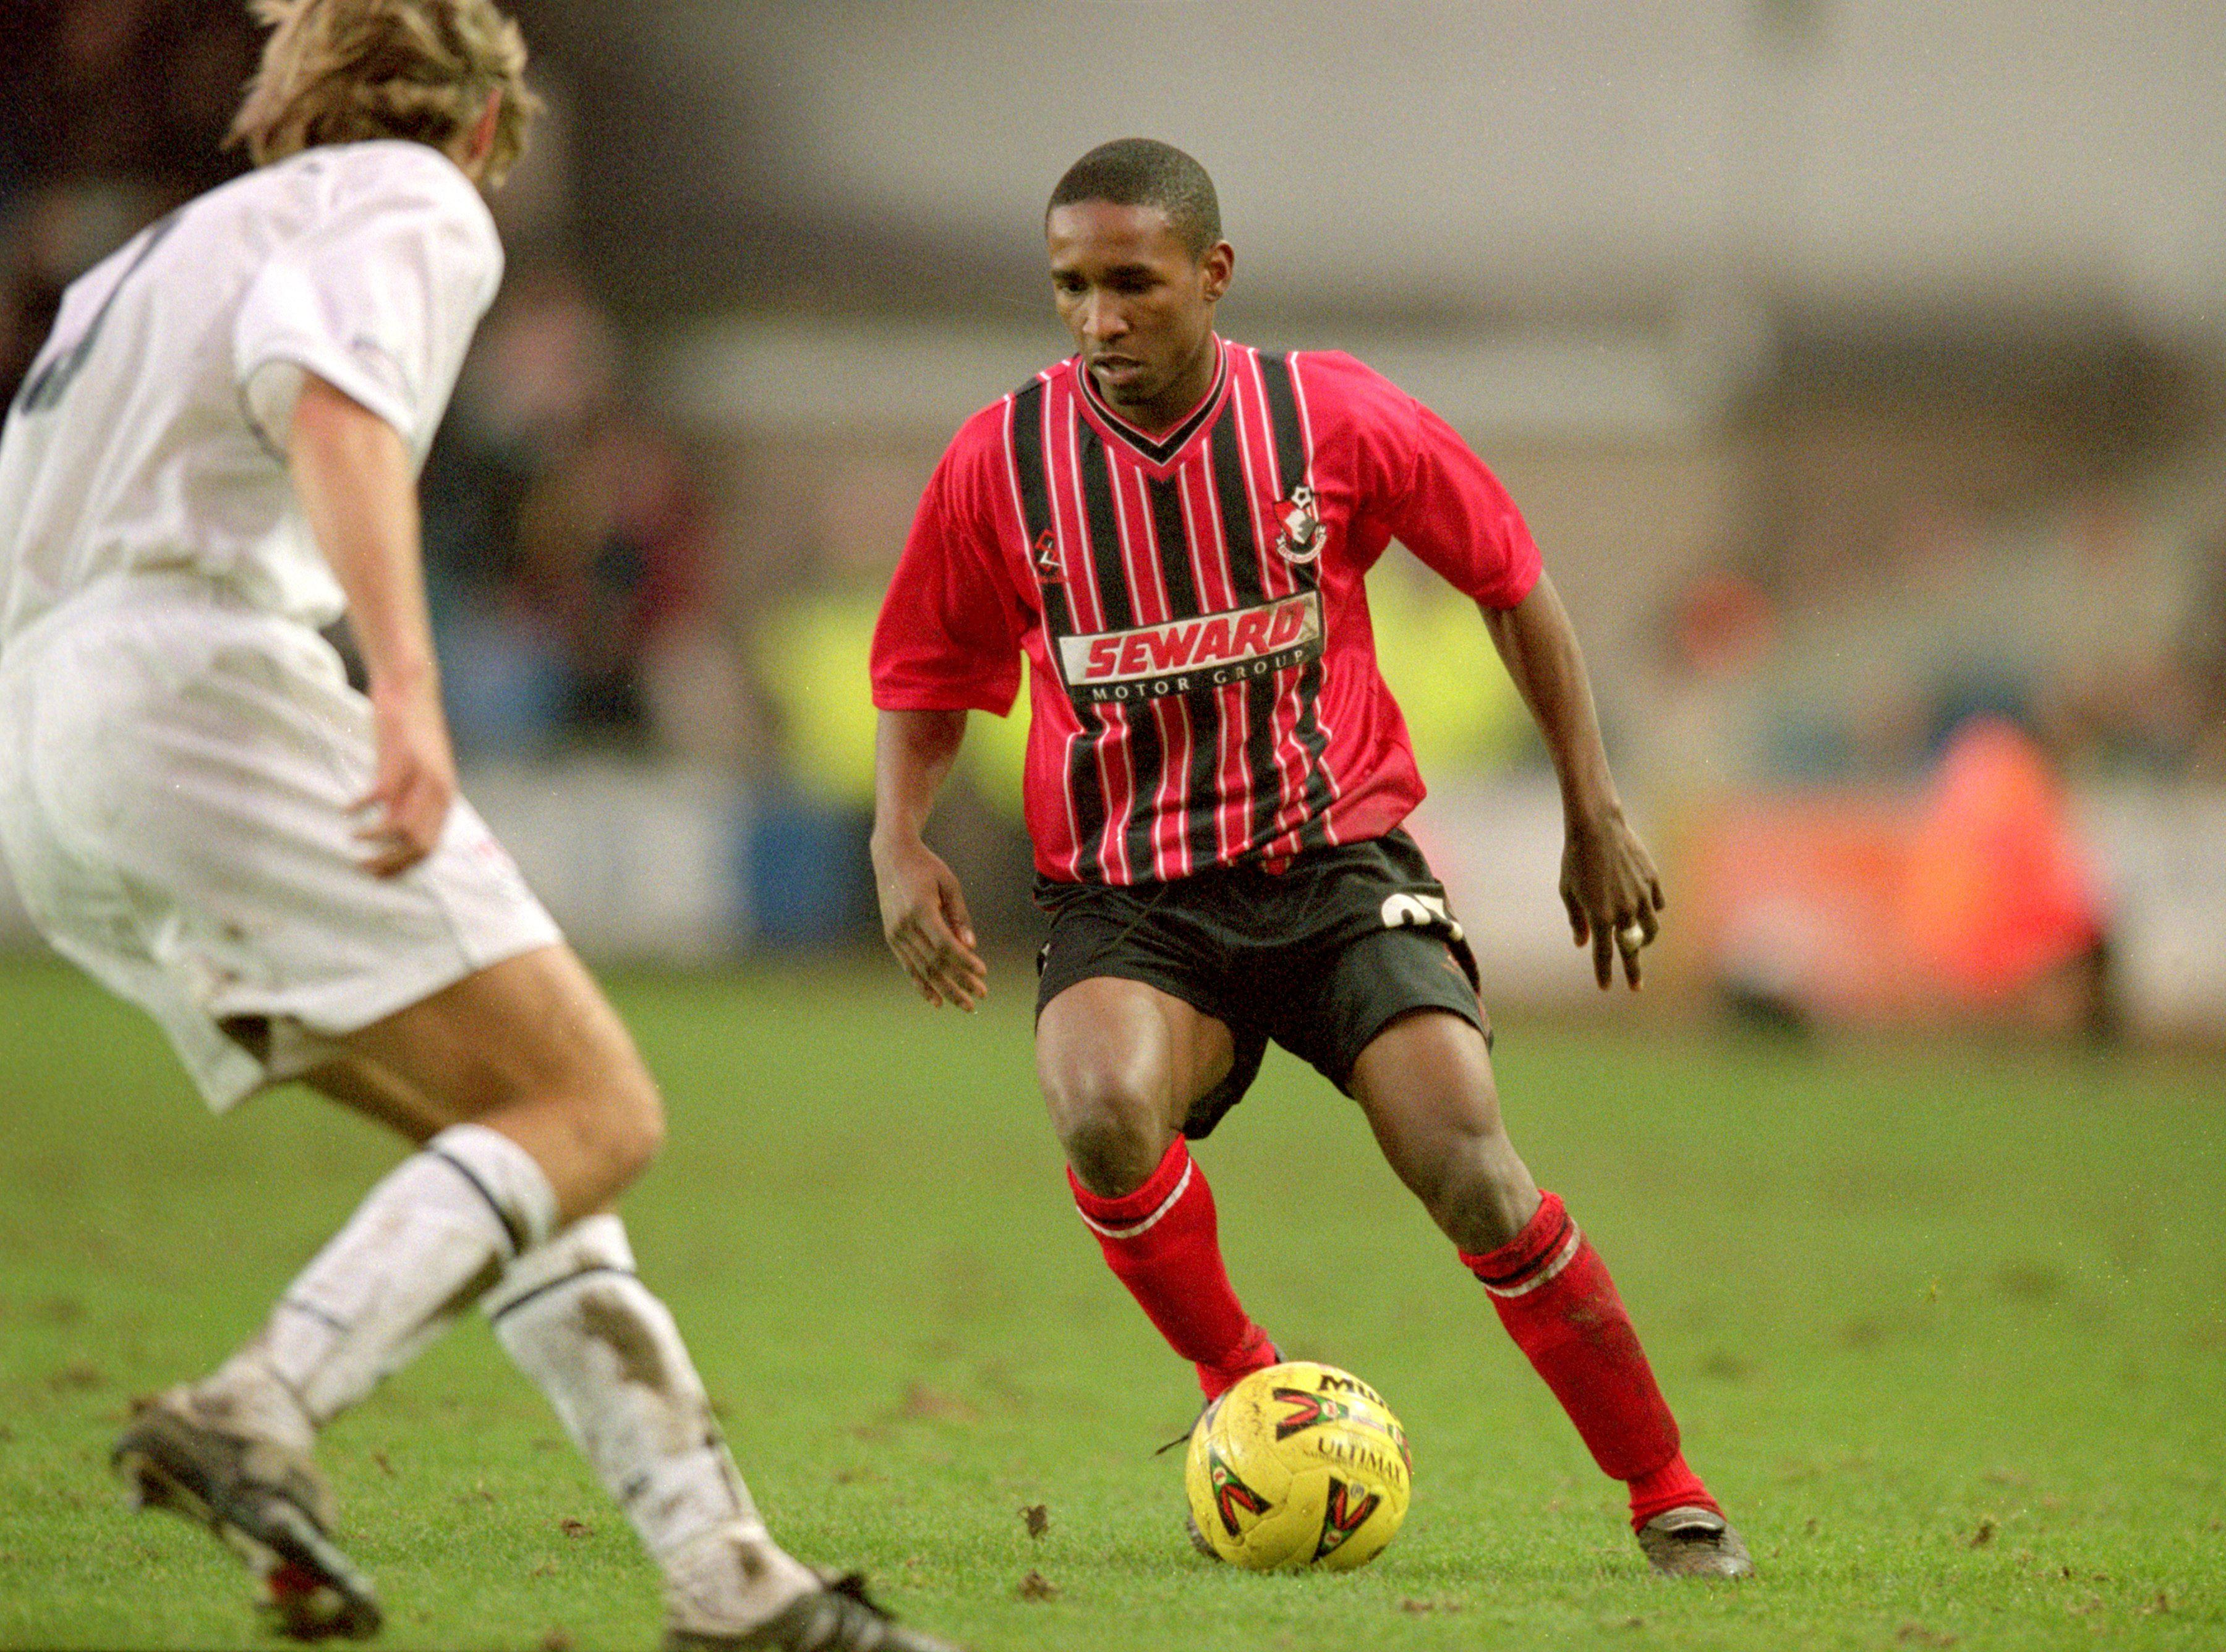 Defoe last scored for the Cherries during a loan spell back in 2001